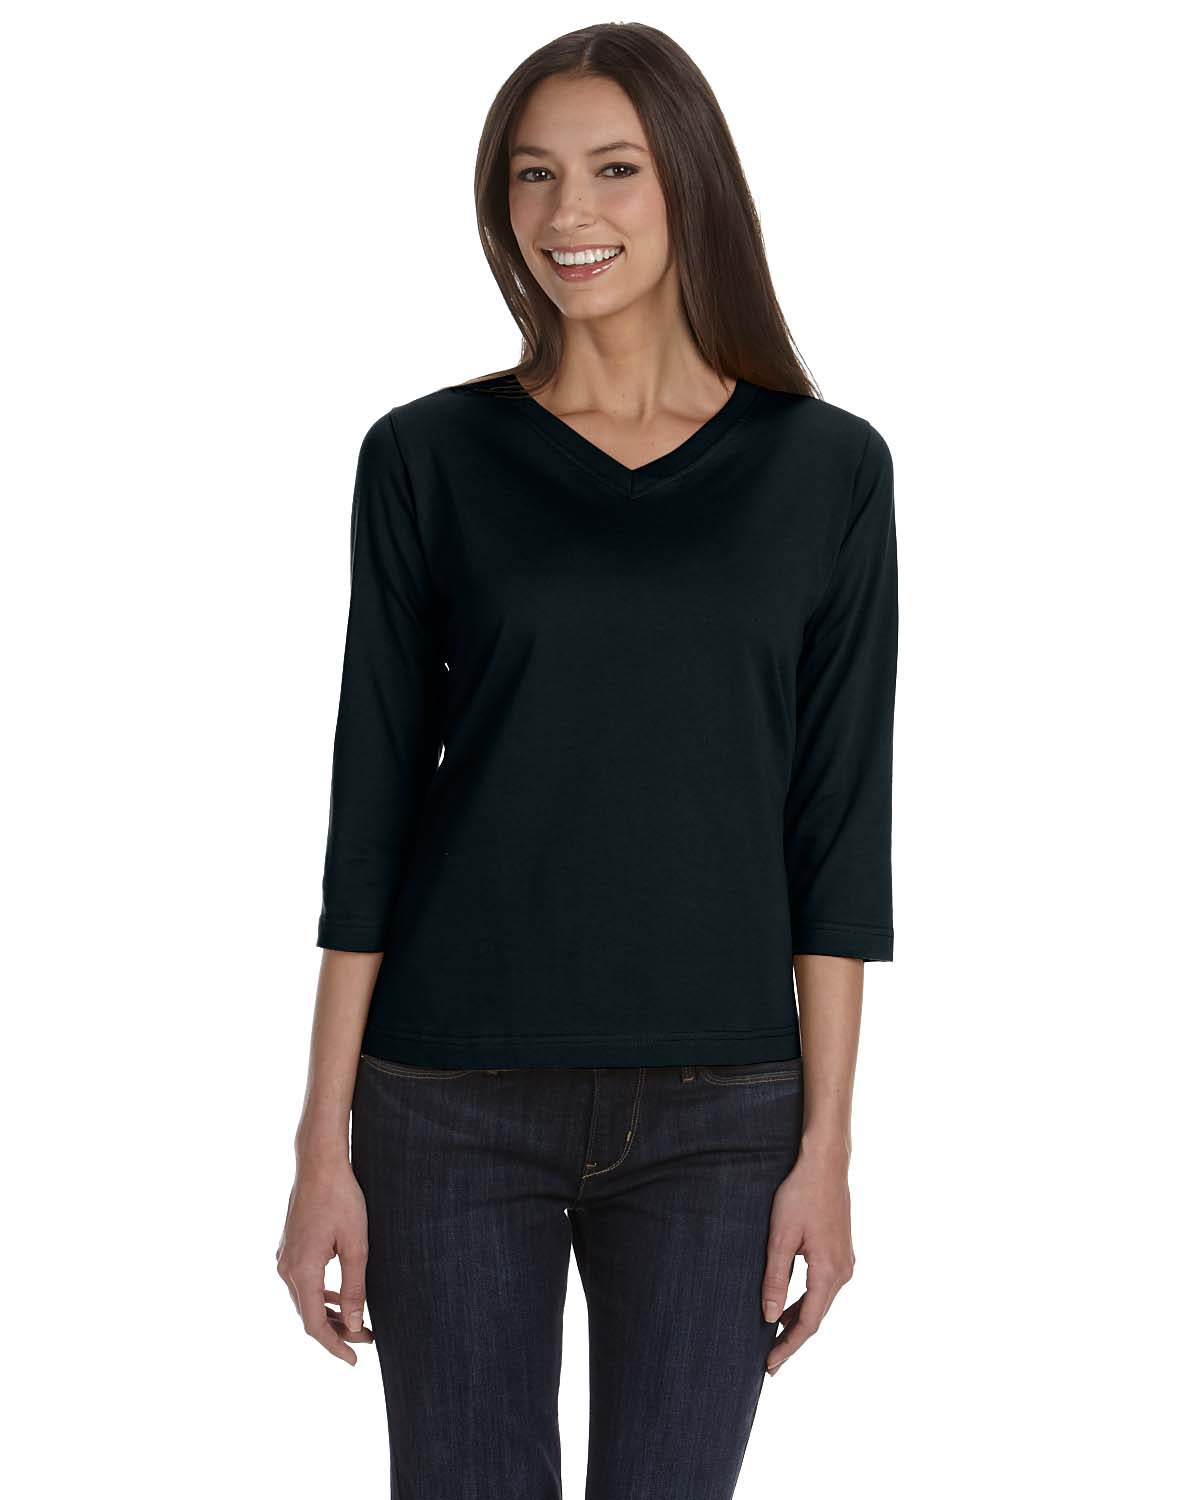 Ladies' 3/4 Sleeve Premium Jersey T-Shirt